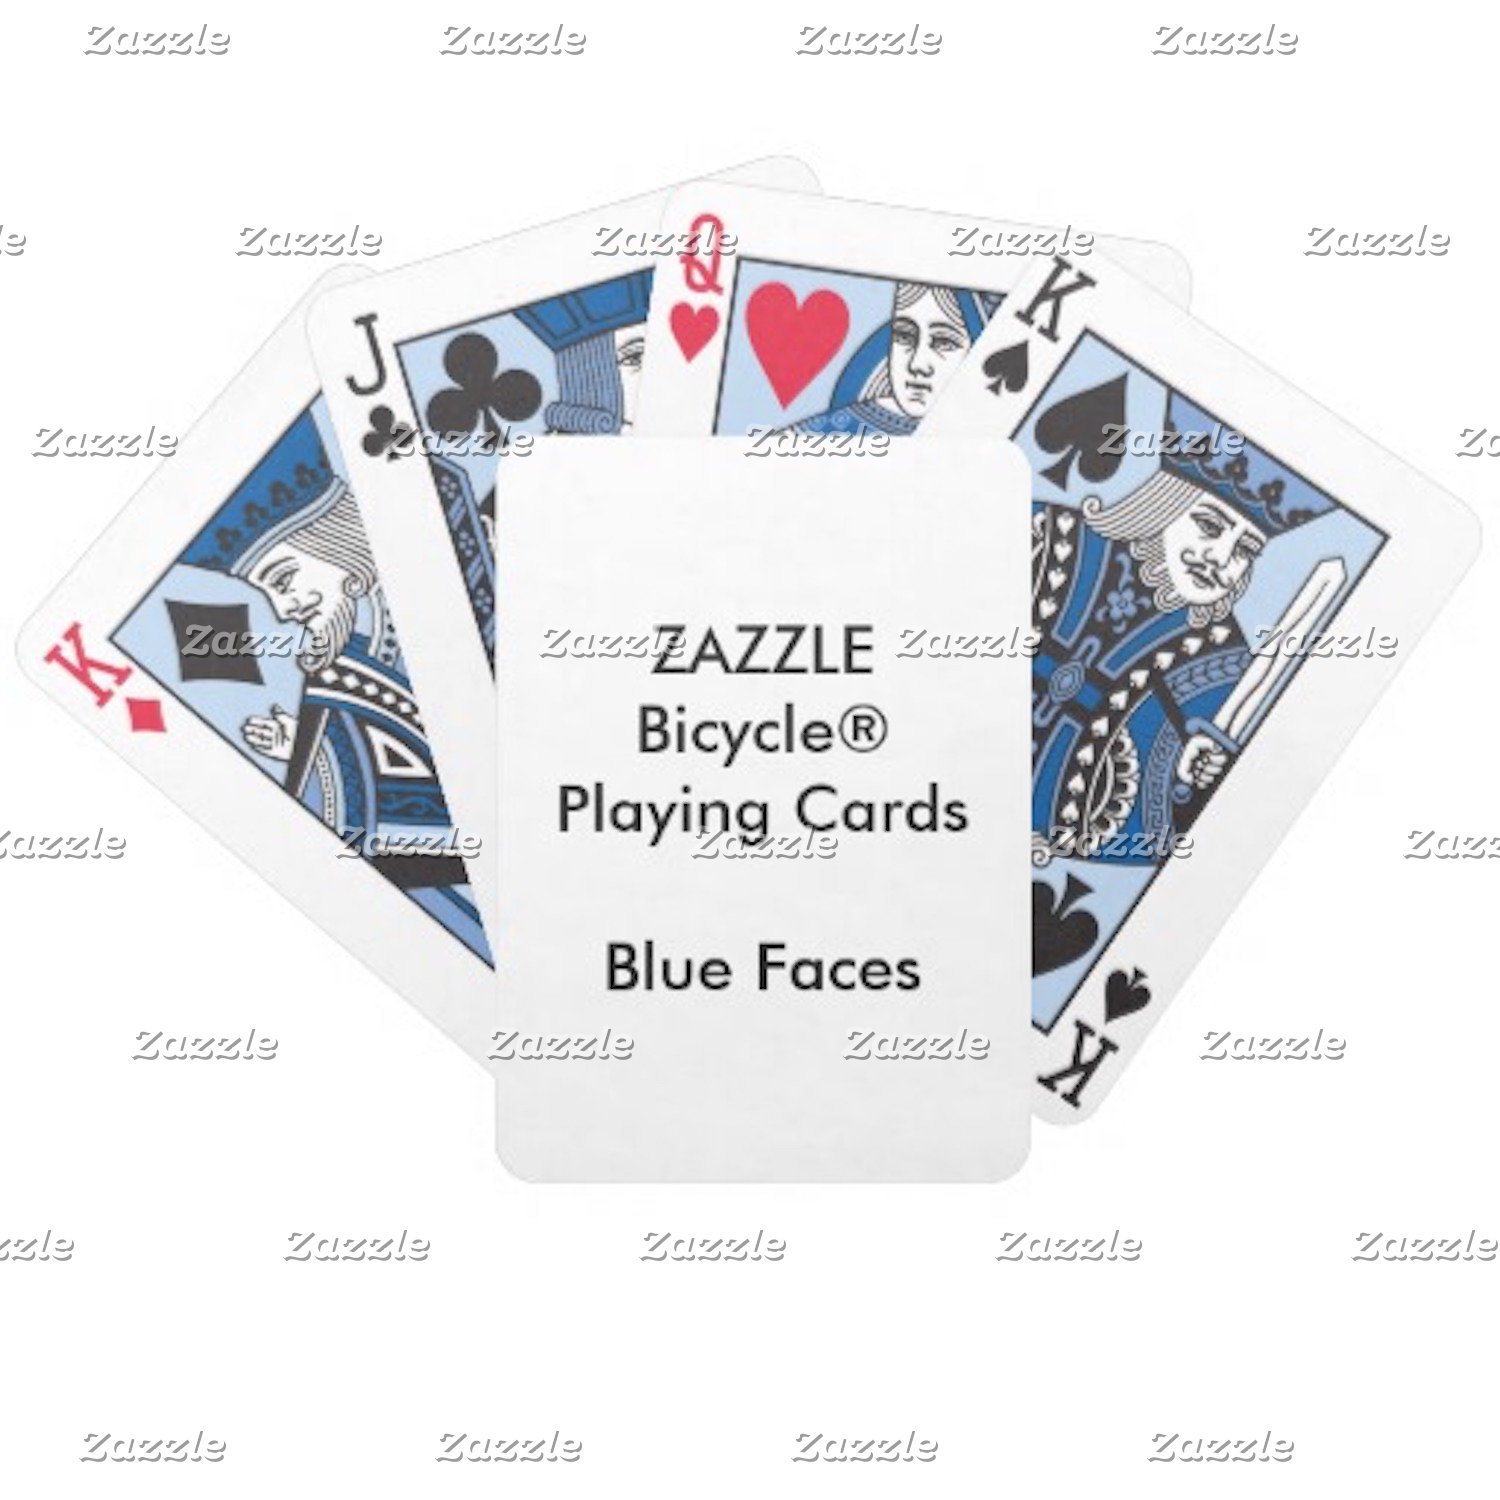 Bicycle® BLUE Faces